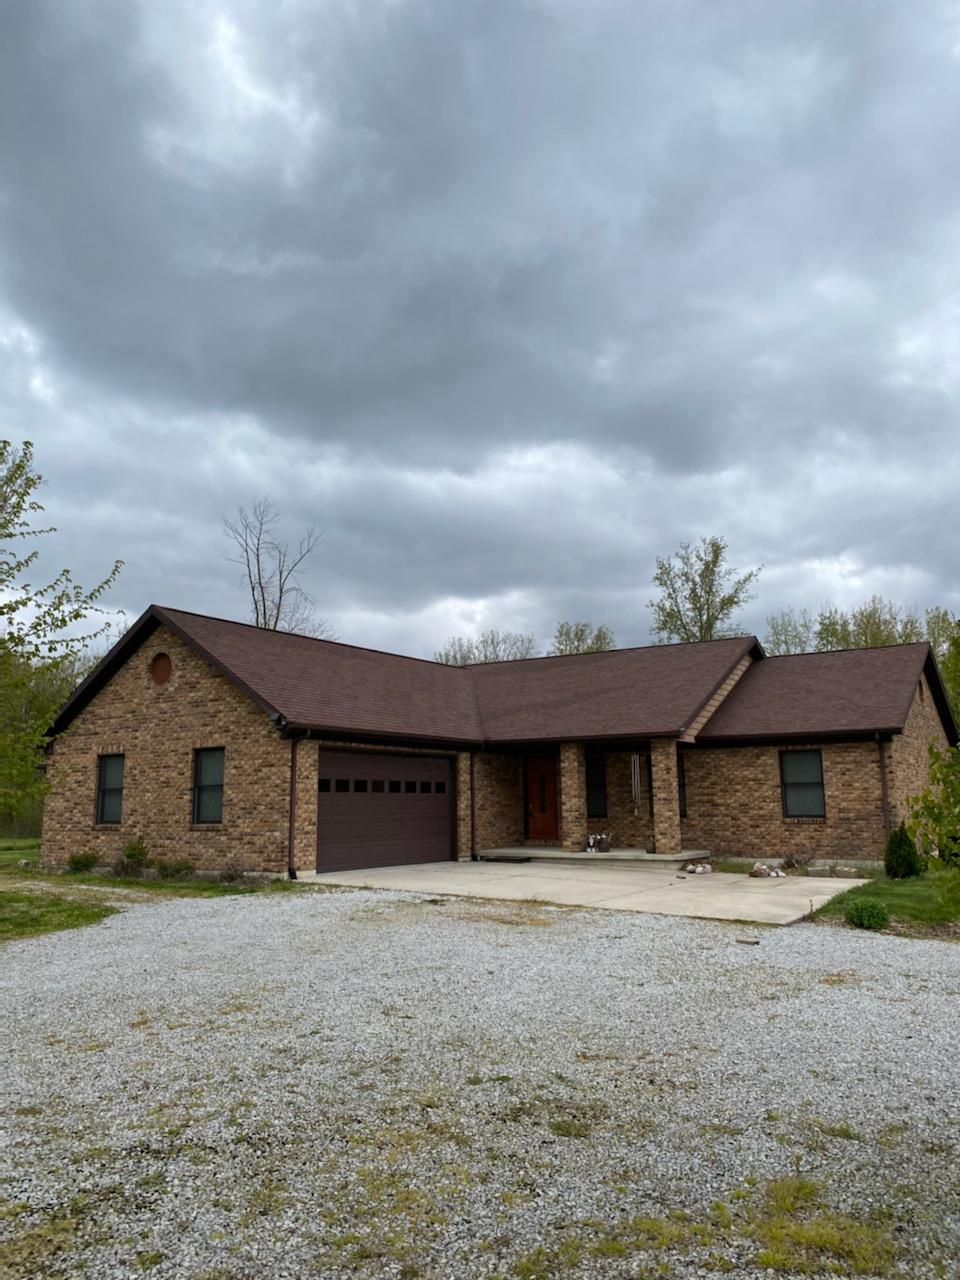 Check out this neat as a pin, channel front home! Boasting just over 1700 sq ft. this brick ranch was built in 2007. No flood insurance required, the covered patio has electrical and plumbing roughed in for a wet bar/ bathroom. Sit on your patio and enjoy the wildlife and lake traffic! Inside is finished with 6 panel solid oak doors, Solid oak trim and much much more. The property is situated in the rear of the amazing Hecht's Landing. Call your favorite agent and schedule your showing today!